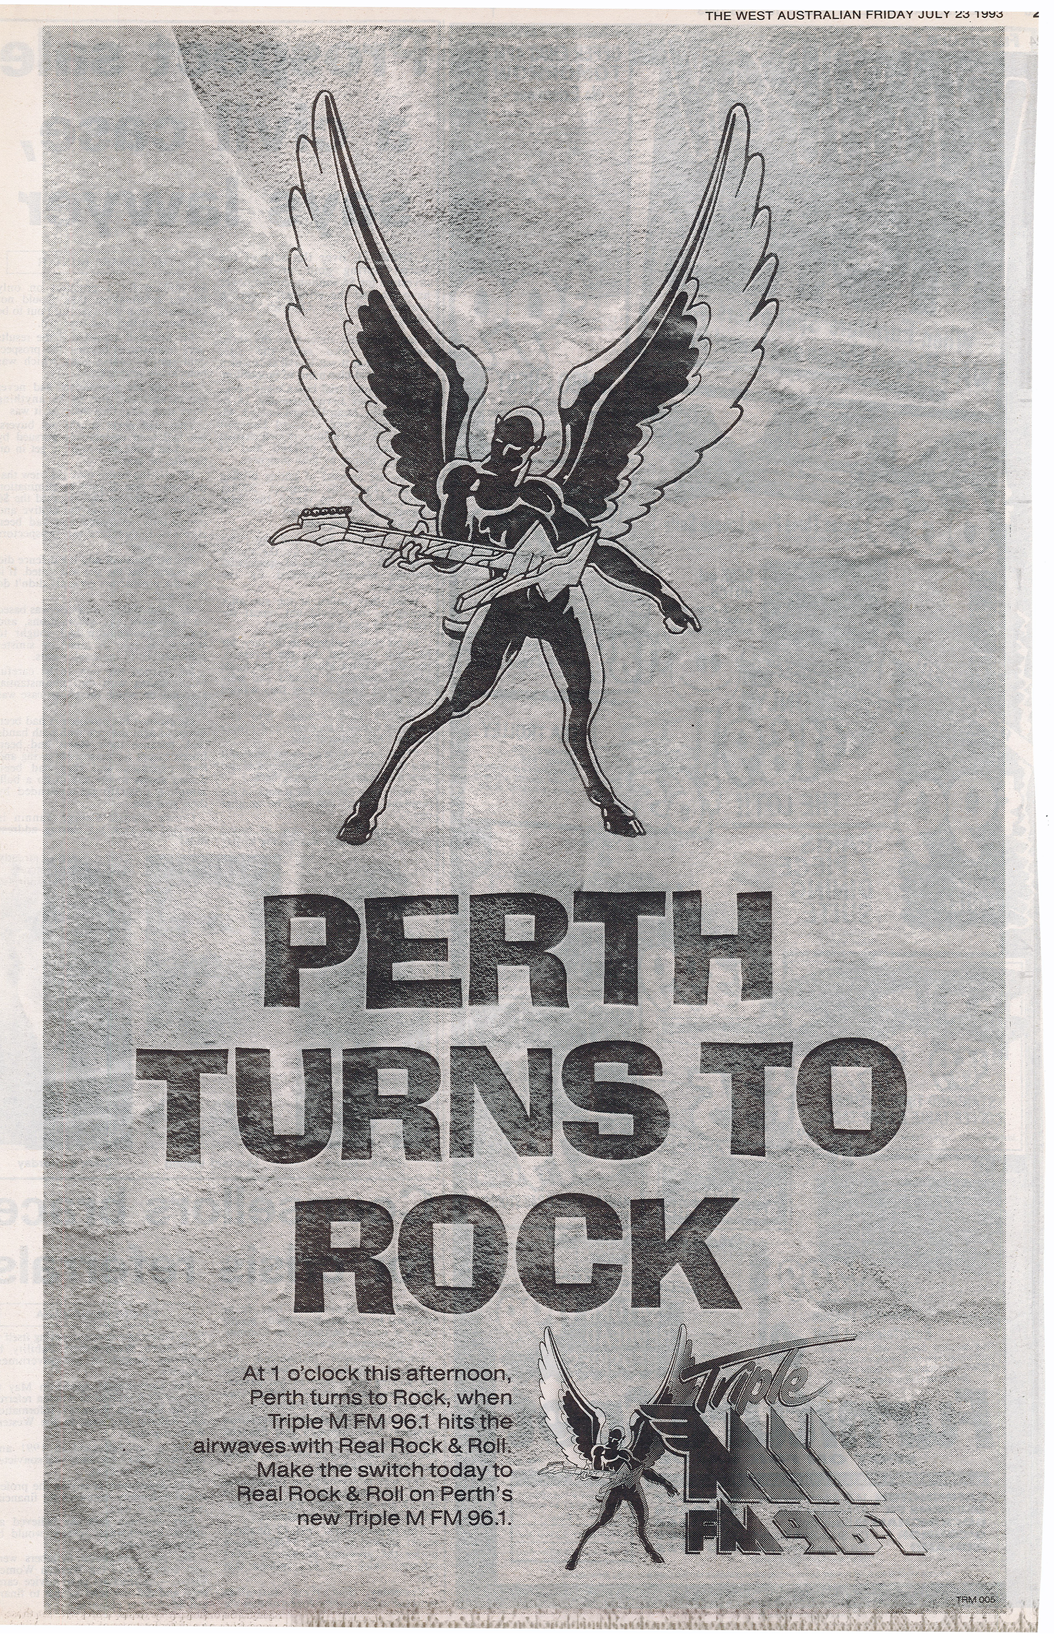 1993.07.23 - Advert - Perth Turns to Rock - Triple M - The West Australian.png